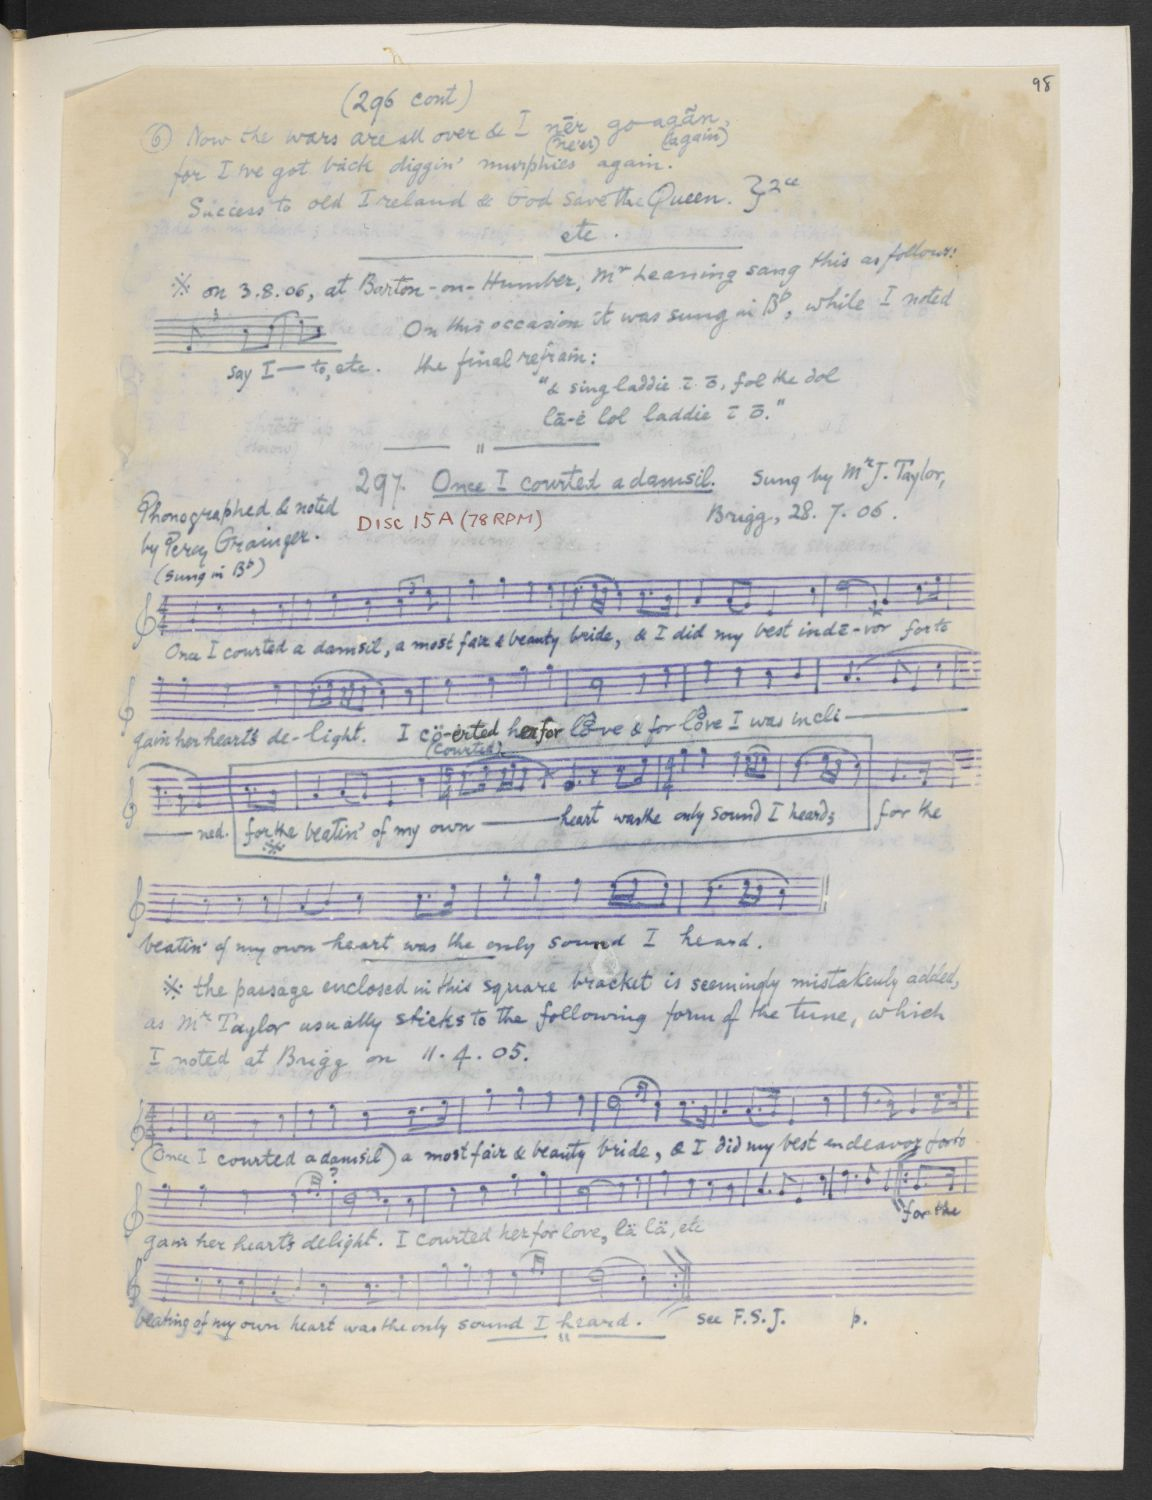 Once I courted a damsel, phonograph transcription by Percy Grainger